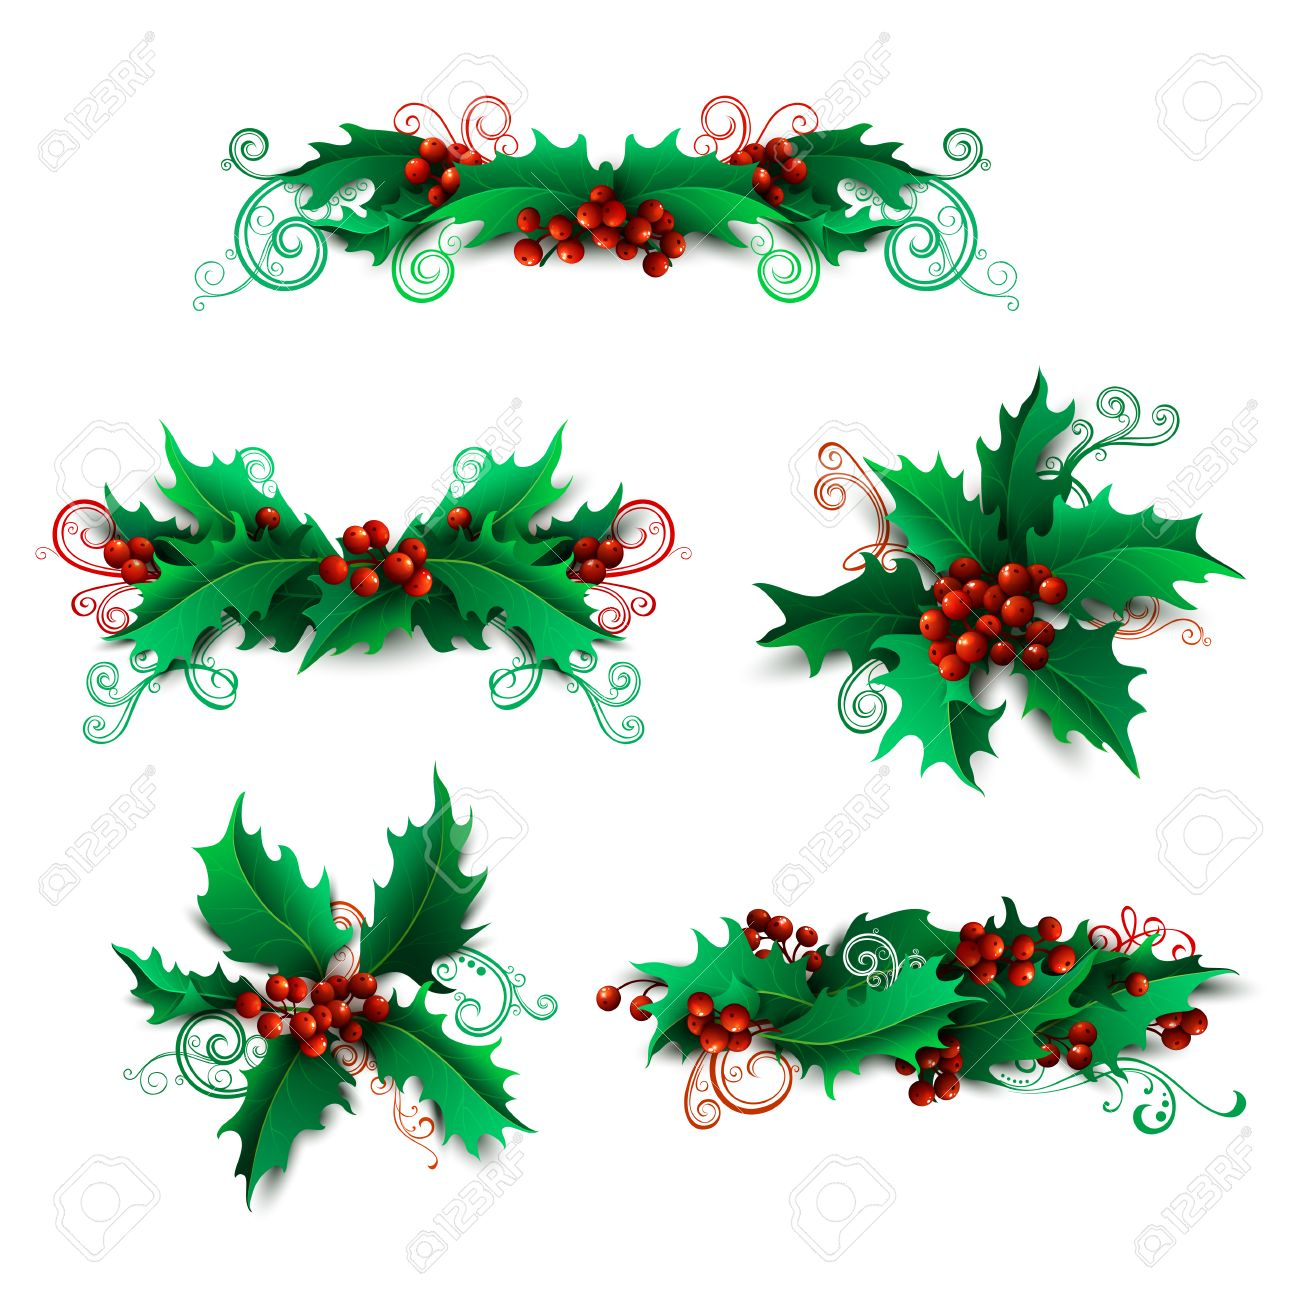 vector vector set of holly berries design elements christmas page decorations and dividers isolated on white background can be used for your christmas